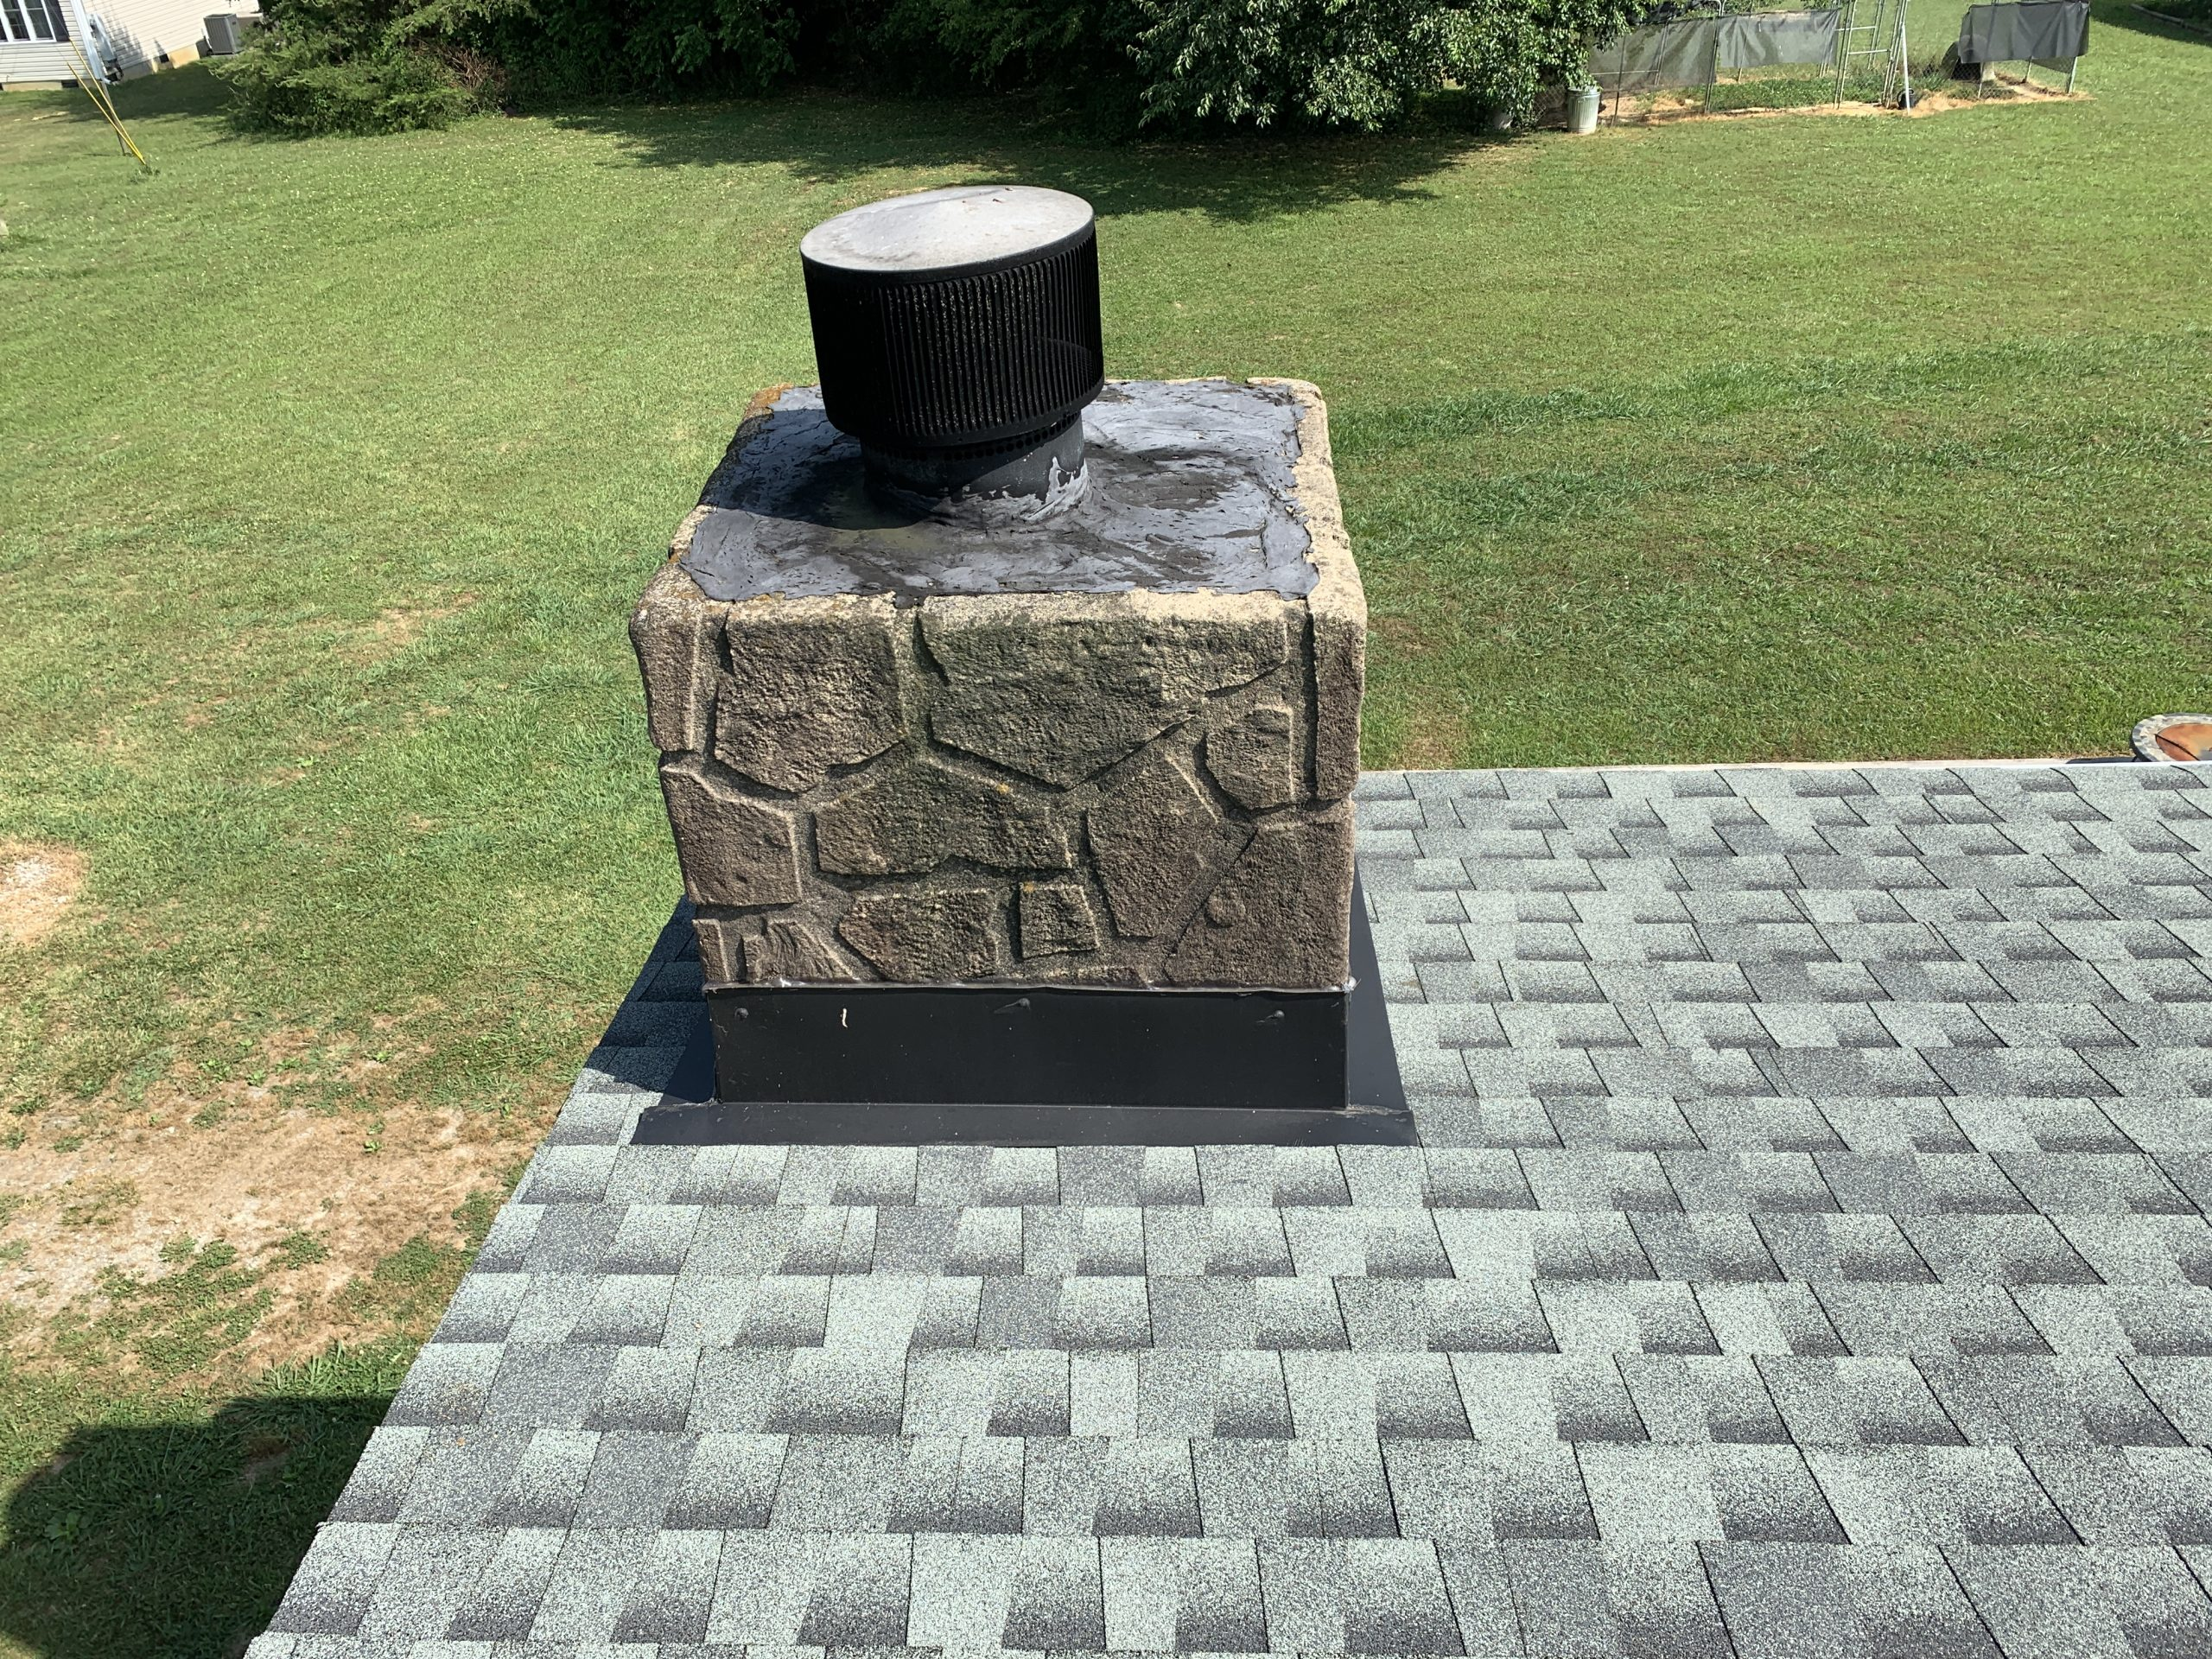 Proper chimney flashing